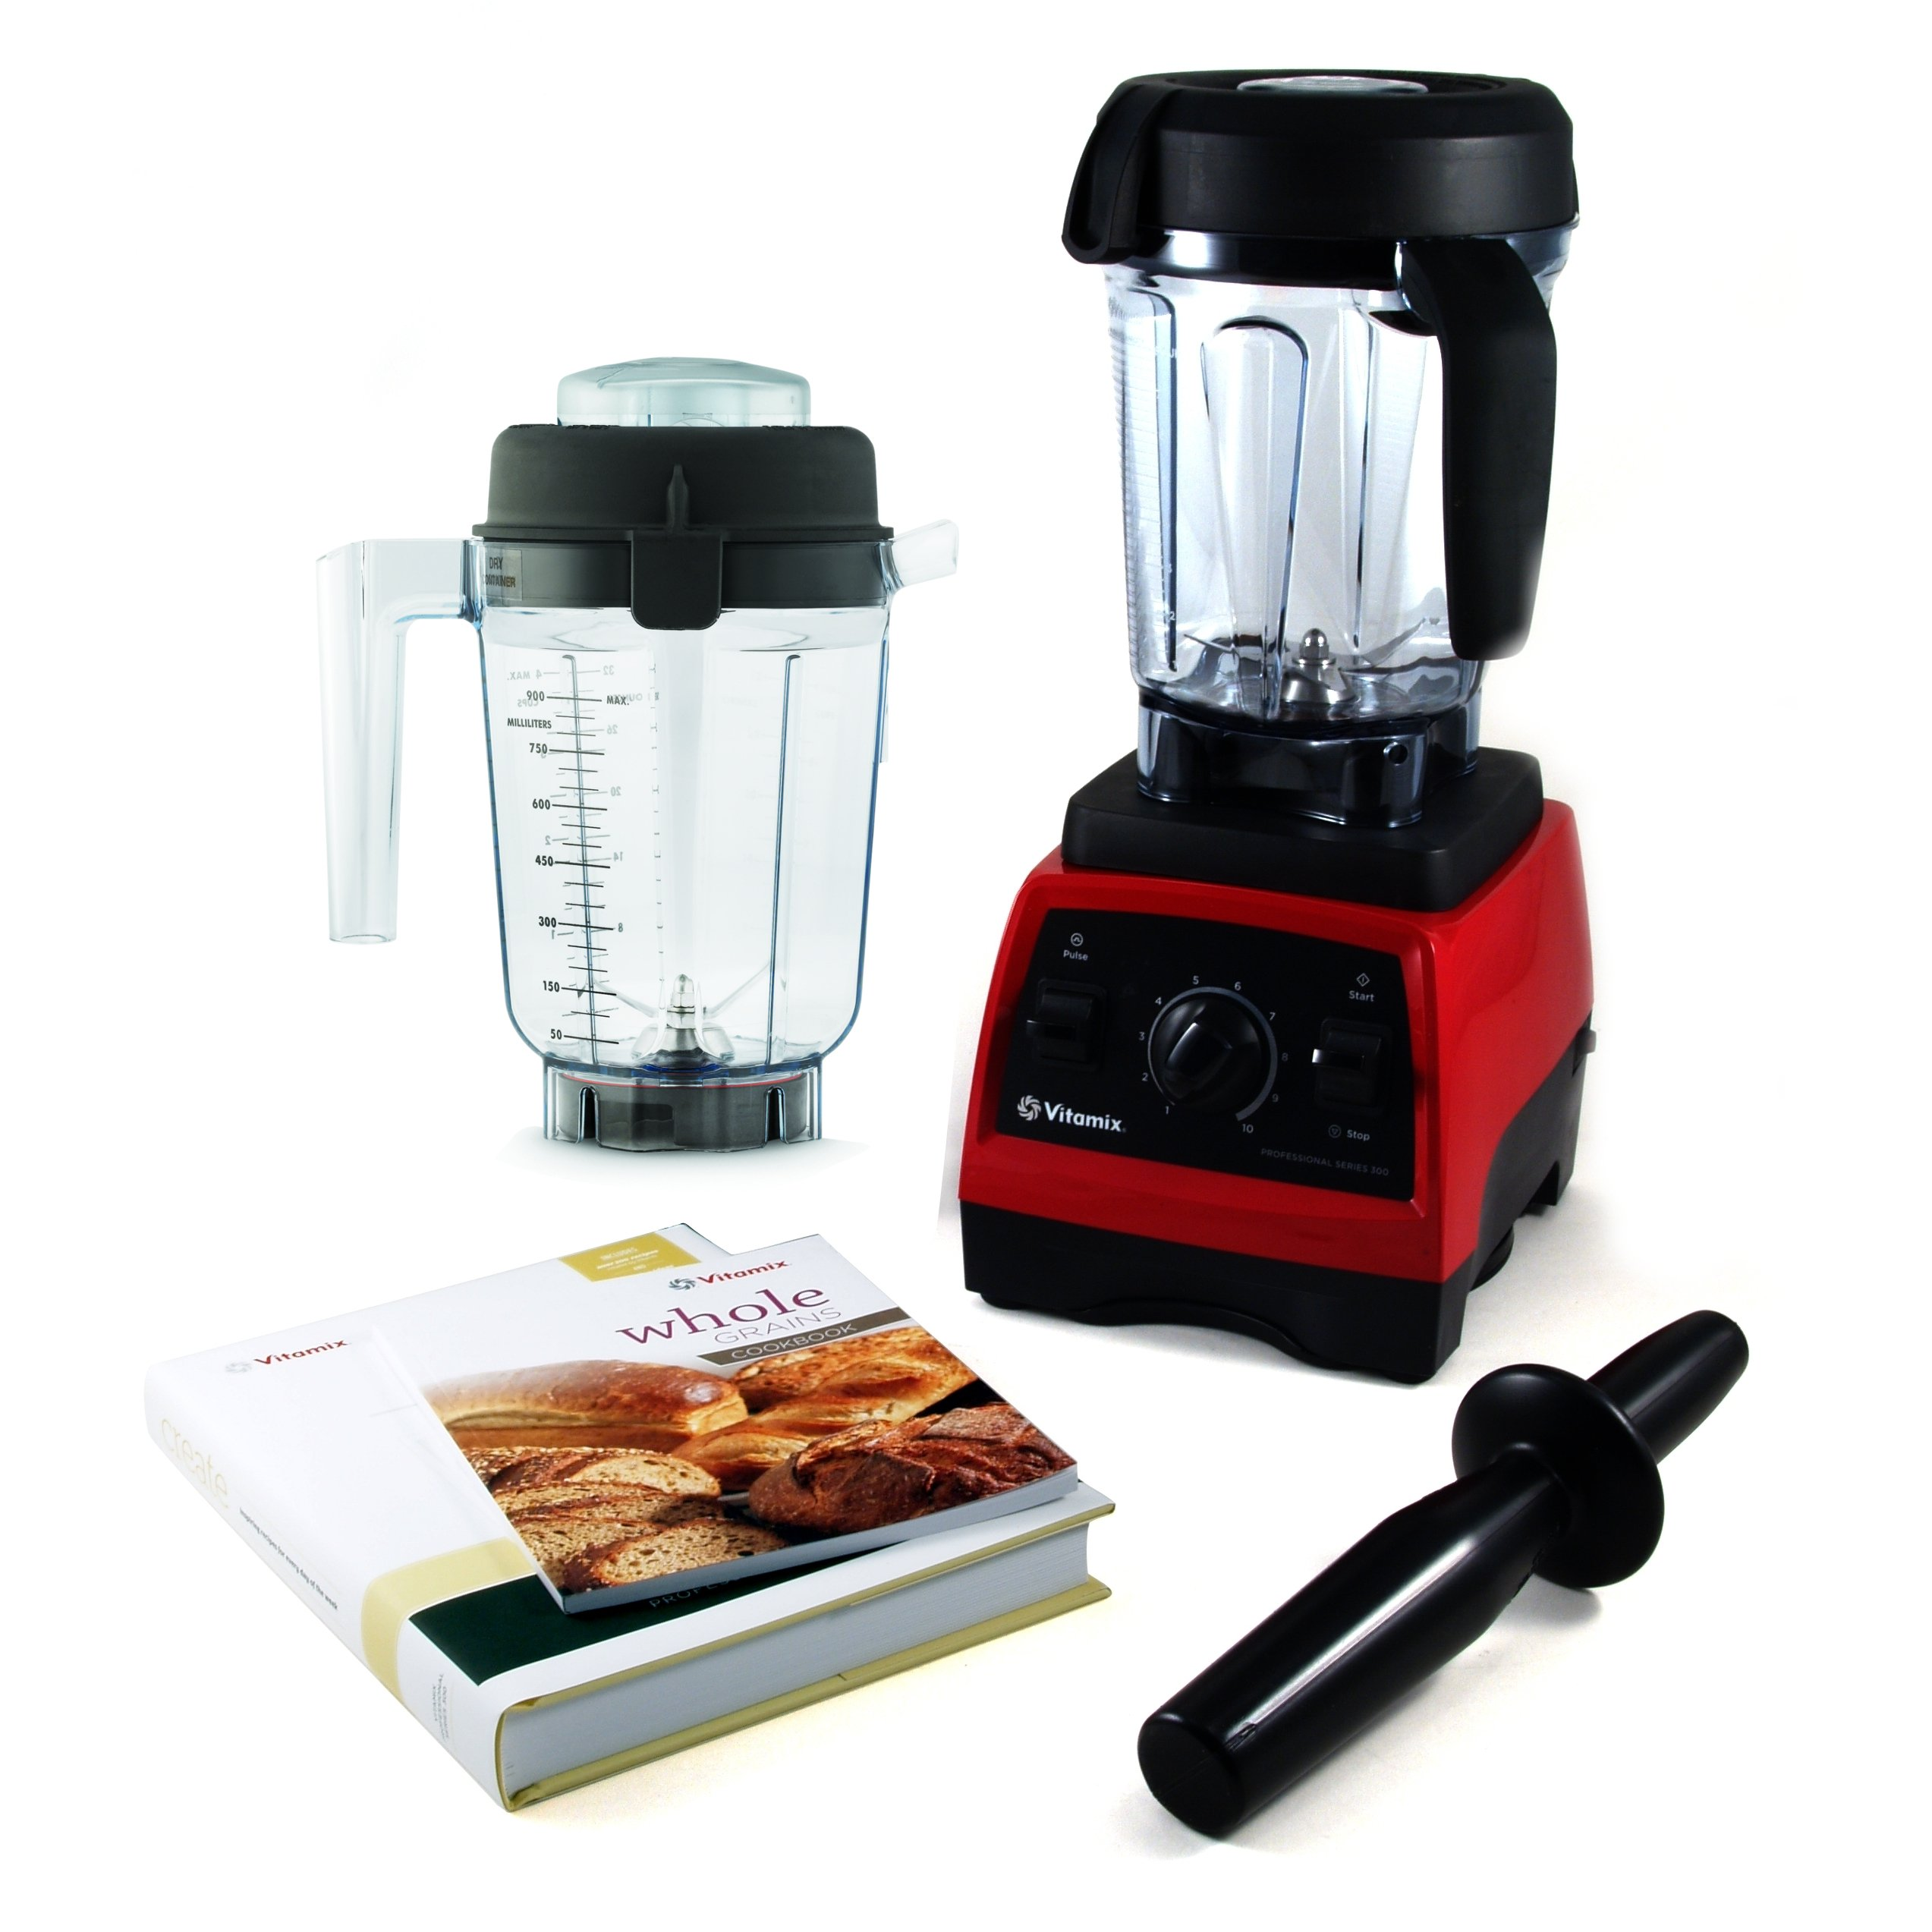 Vitamix CIA Professional Series 300 Ruby Red Blender With Wet Container, Dry Grains Container, and 2 Cookbooks